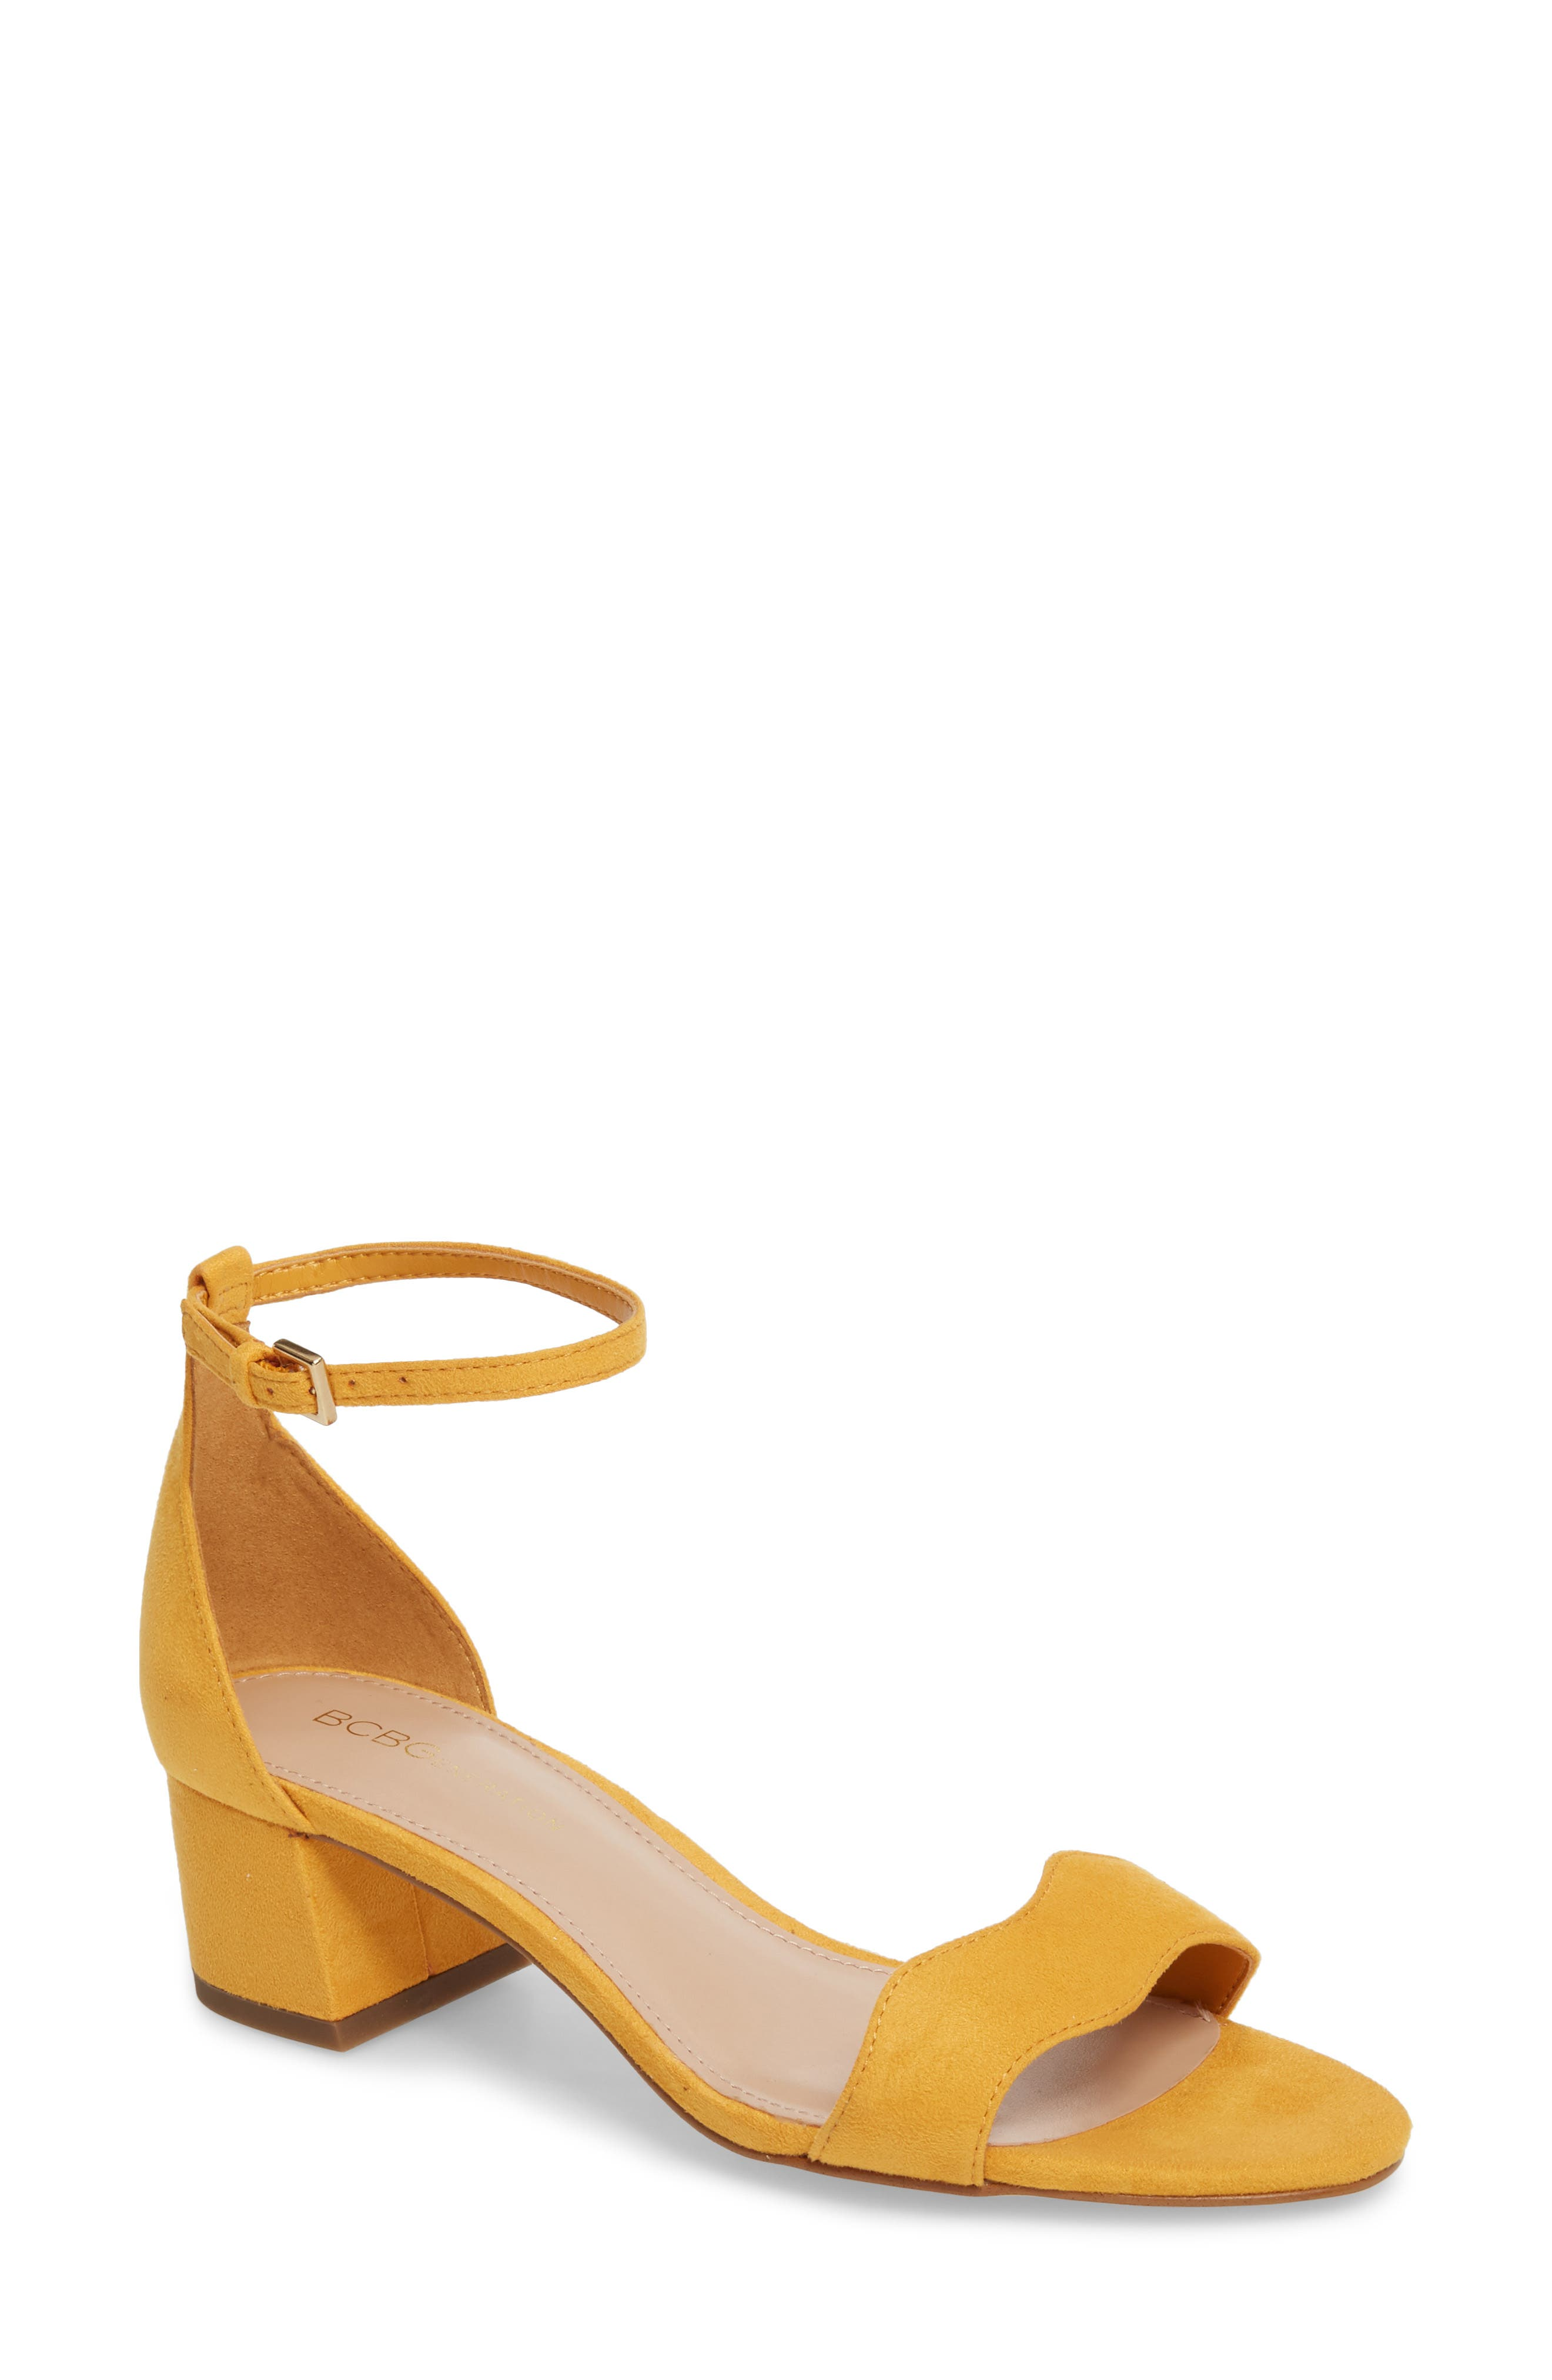 Farlyn Ankle Strap Sandal,                         Main,                         color, Marigold Faux Leather